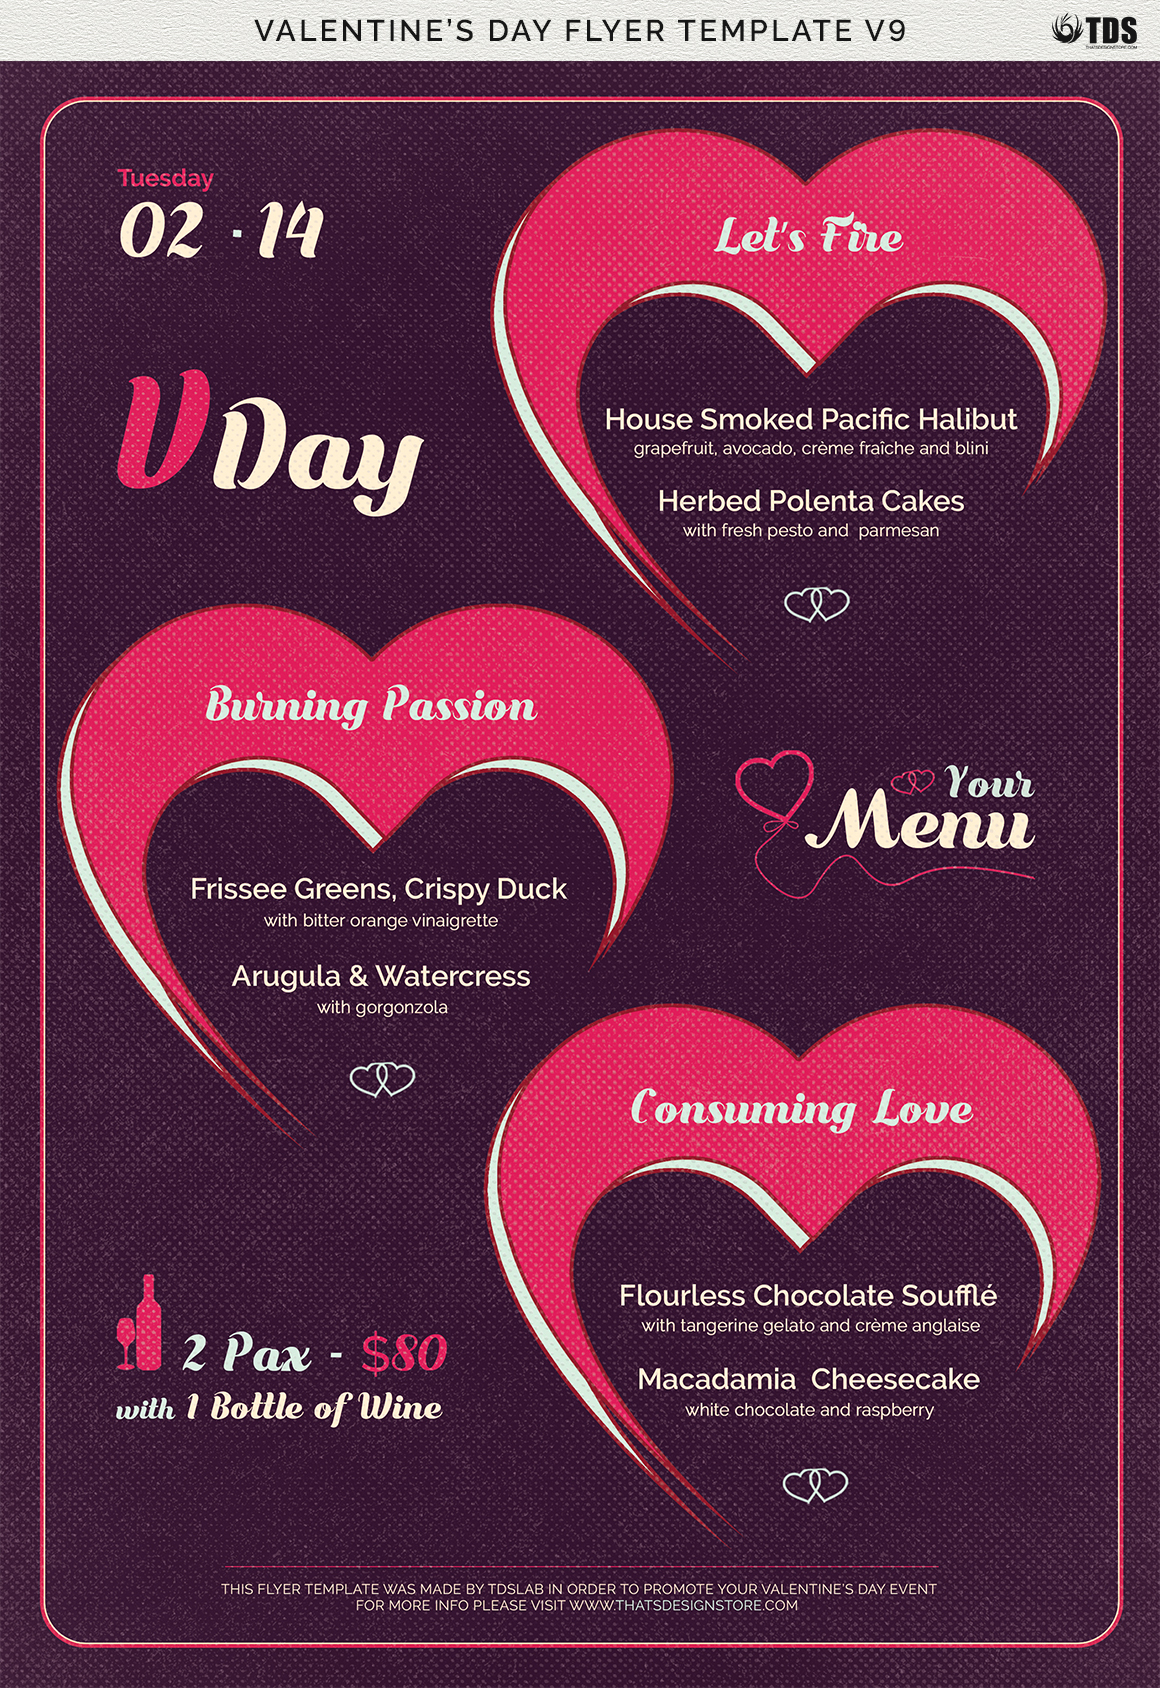 Valentines Day Menu Template V9 example image 8